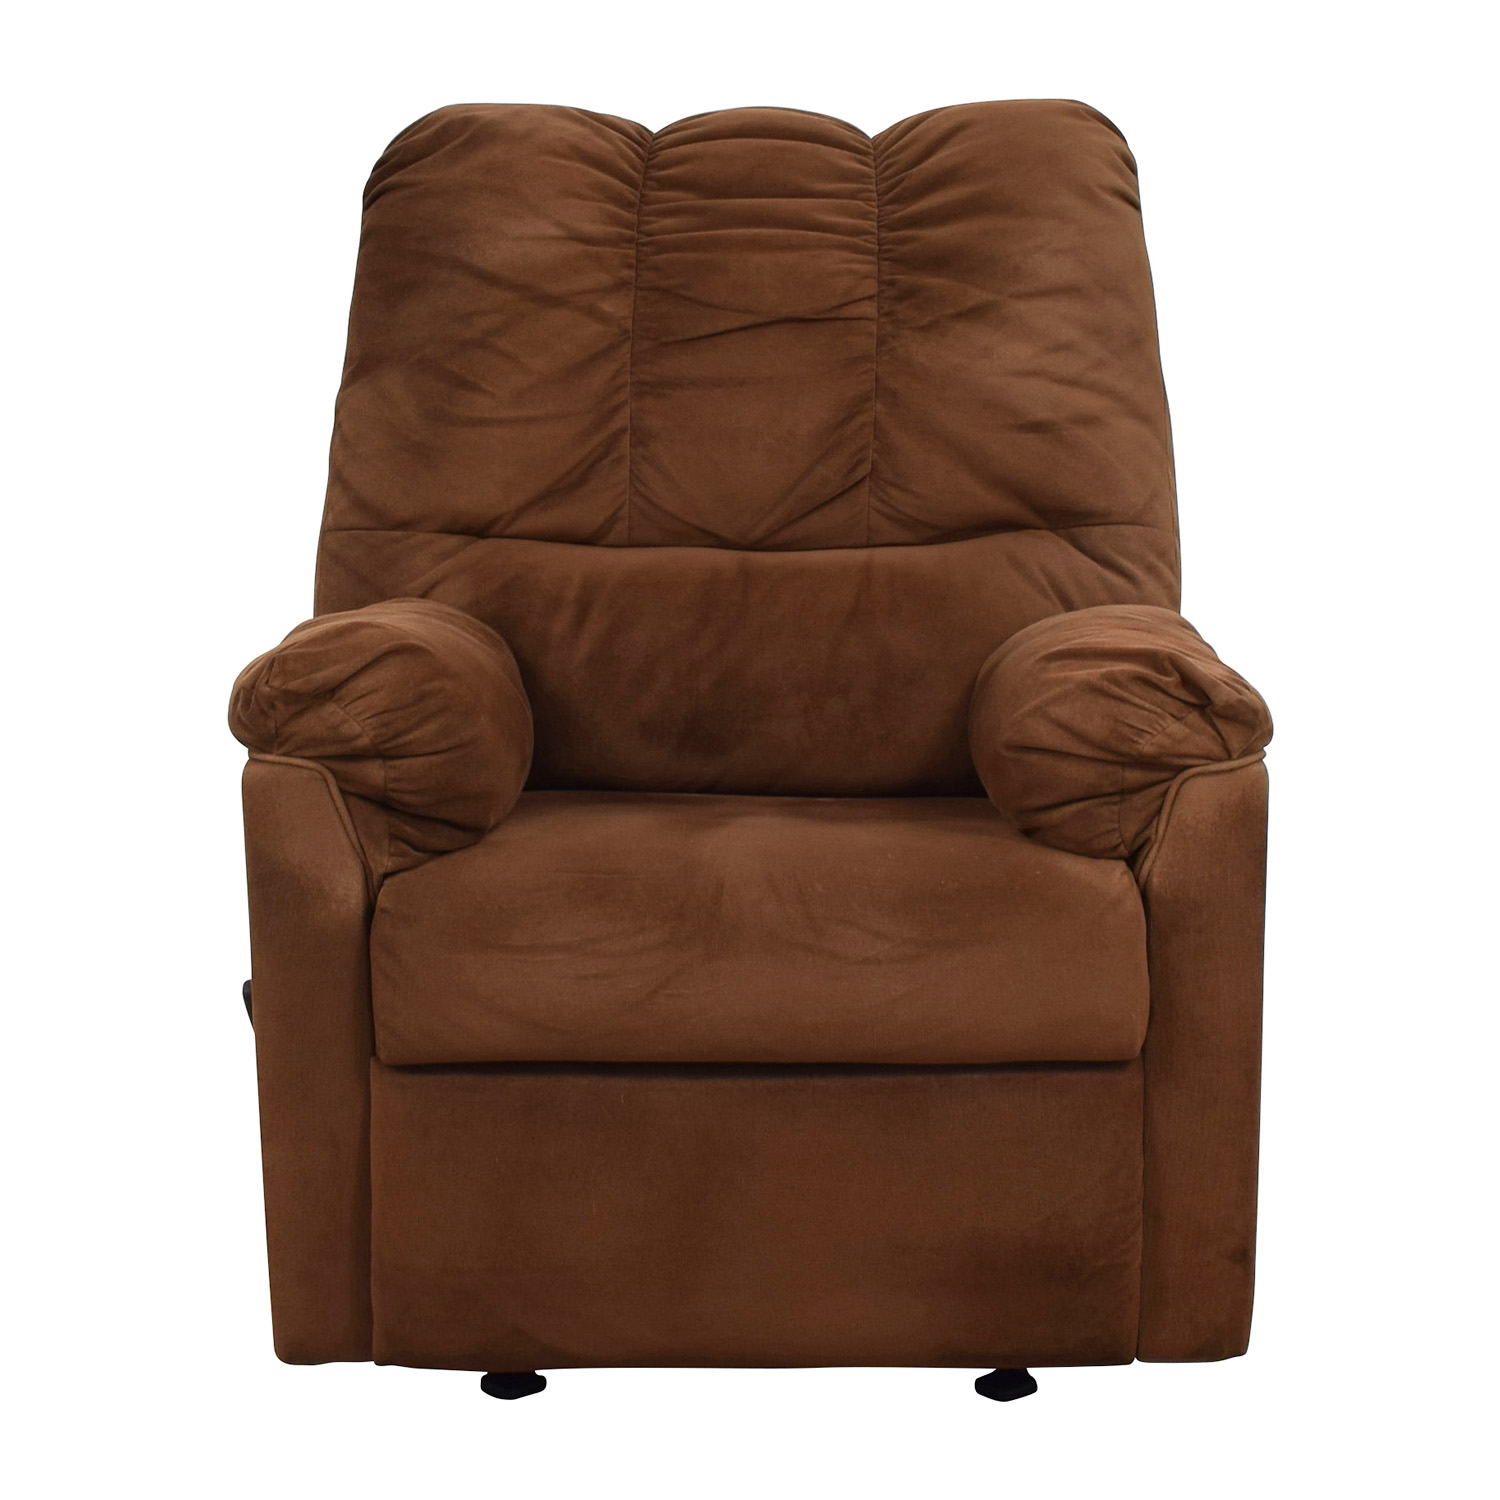 shop Brown Plush Recliner online